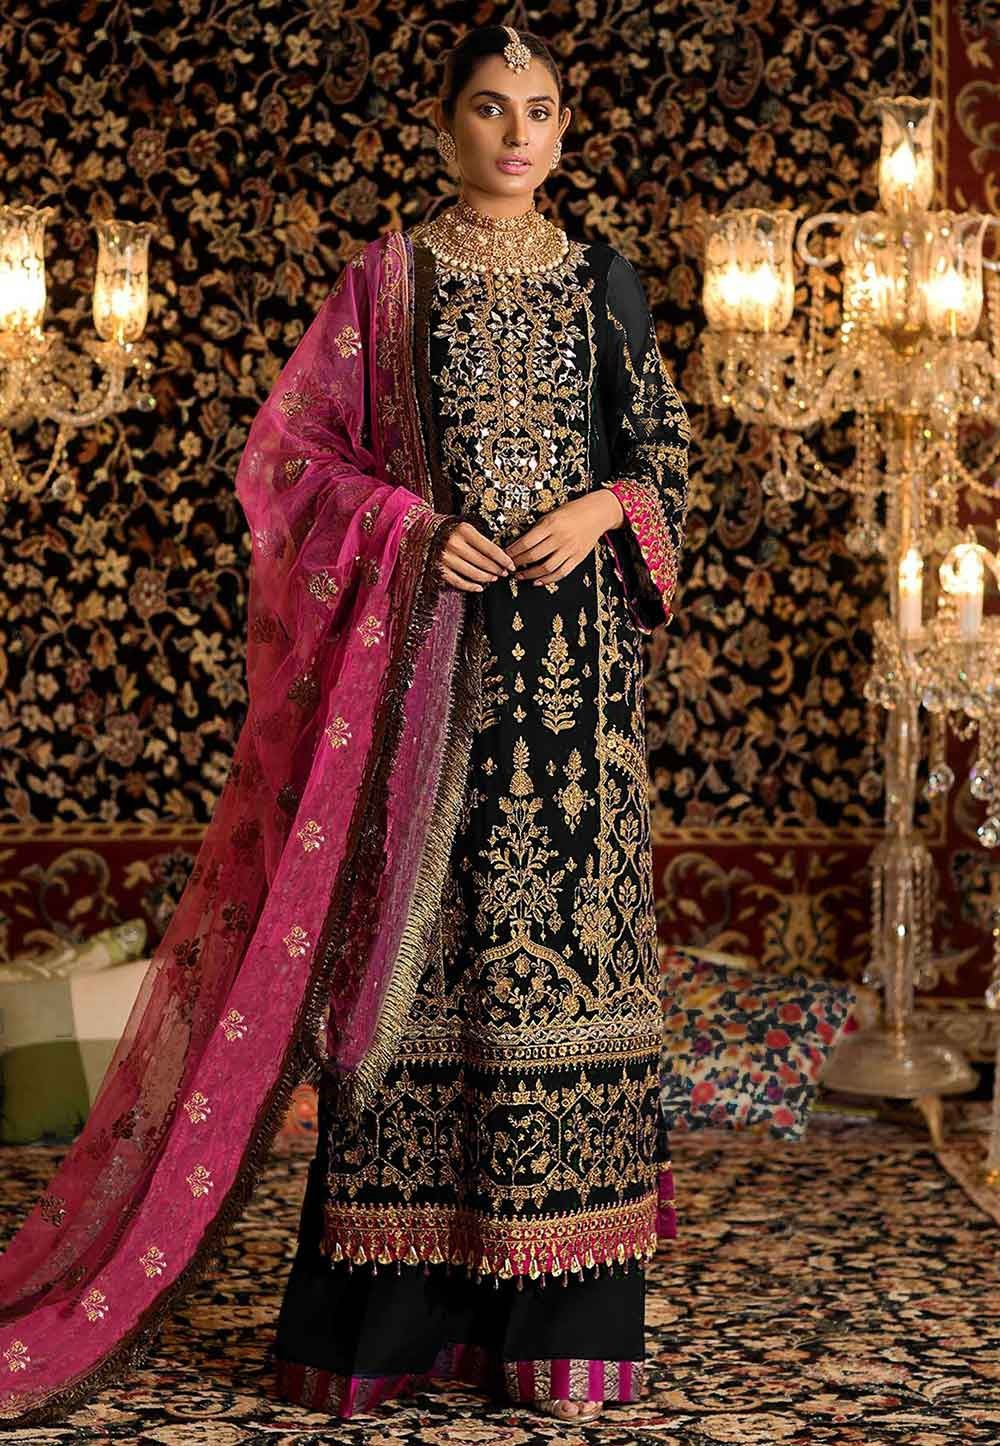 Indian wedding Dress,wedding suit for women